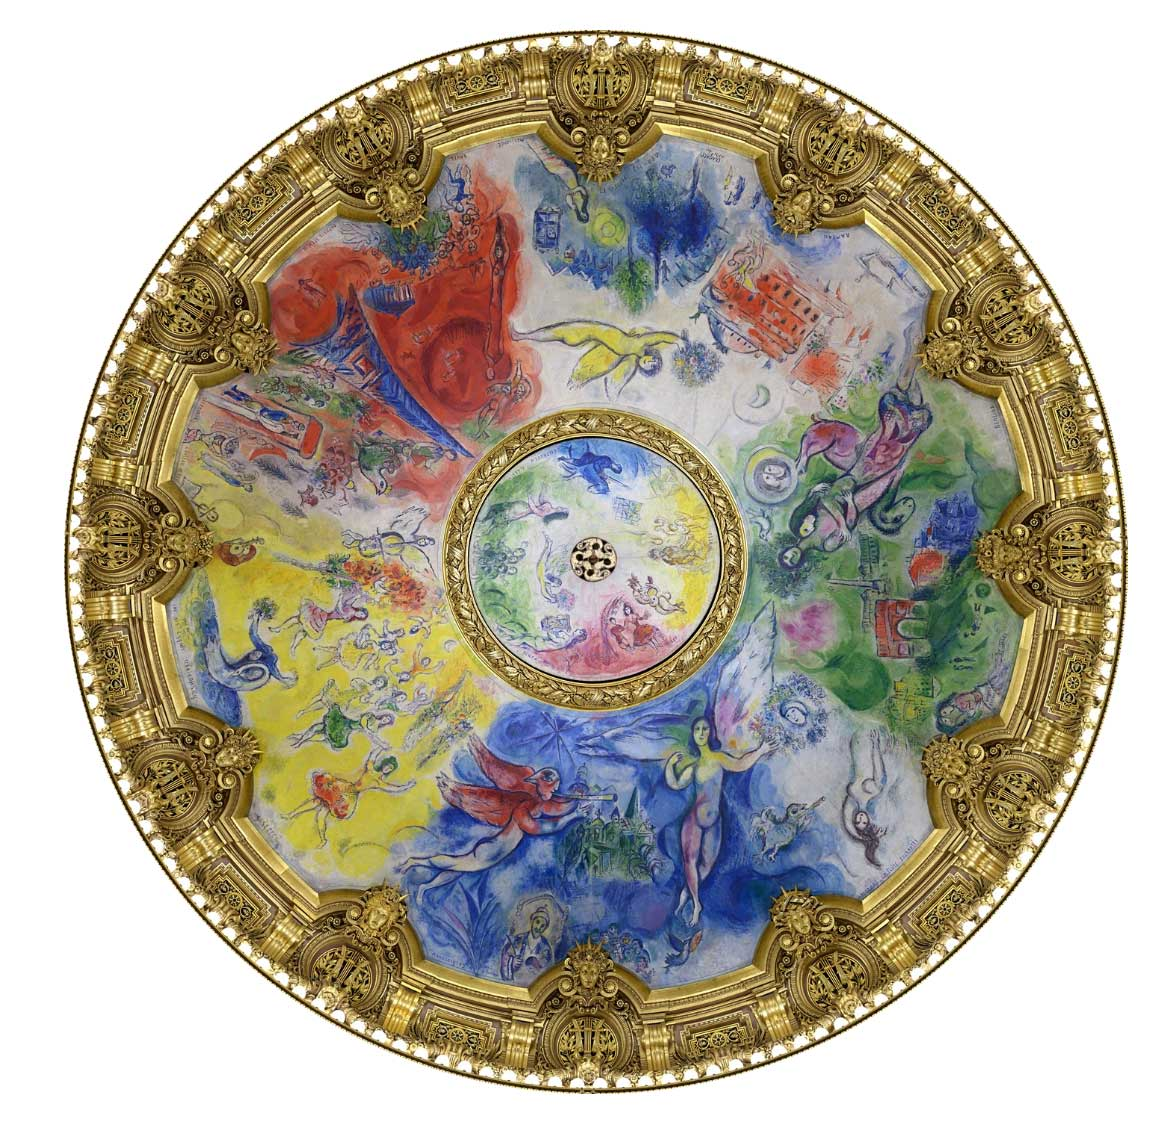 Marc Chagall's Ceiling for the Paris Opéra, from the Google Image Project.